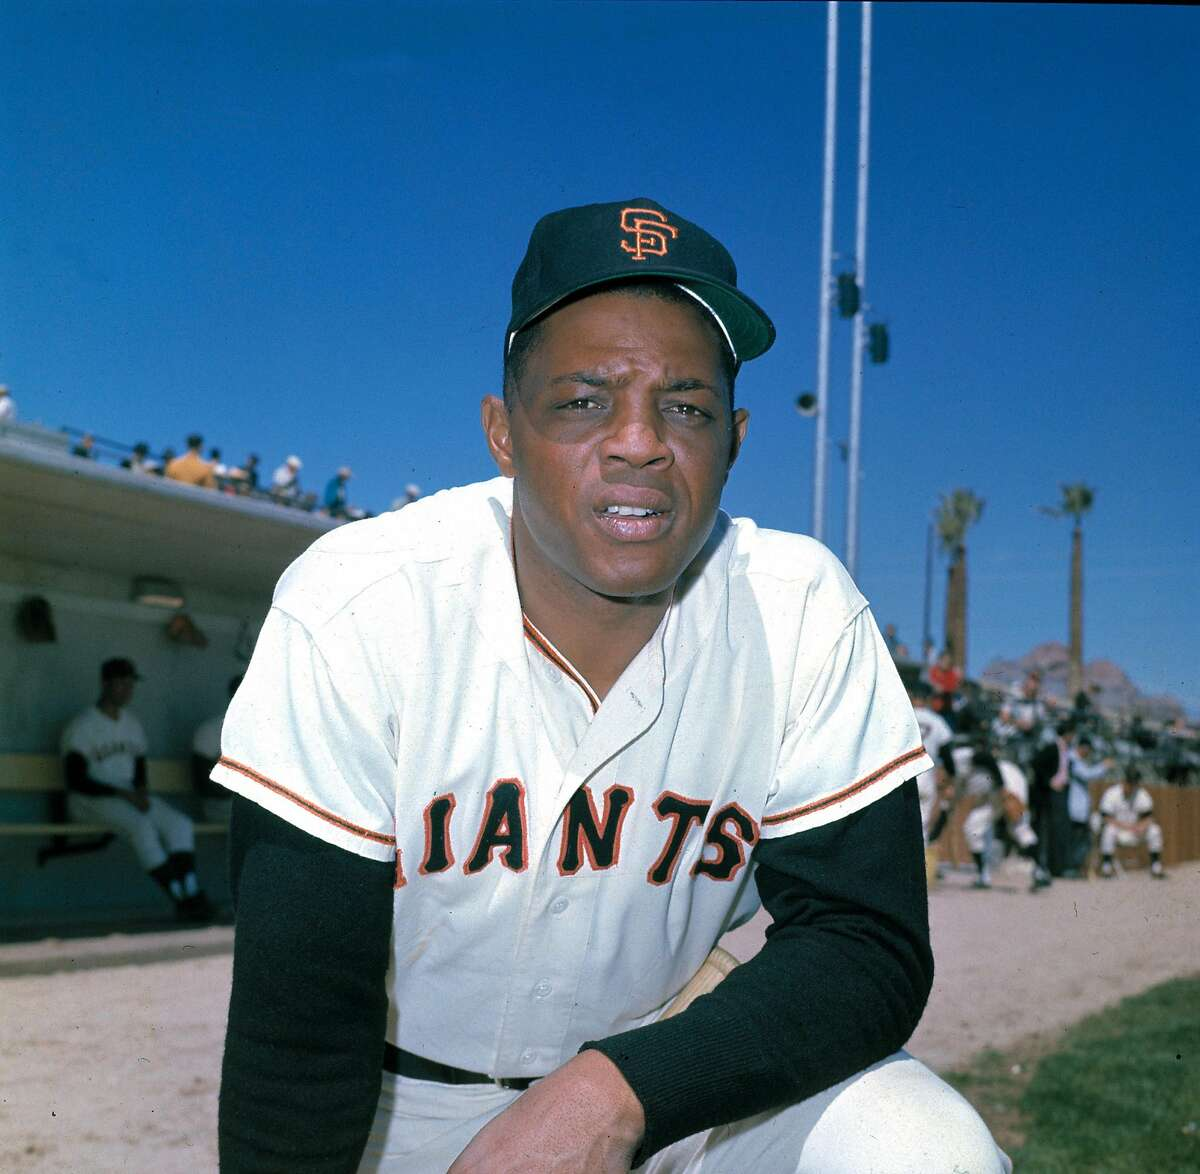 Willie Mays, outfielder for the San Francisco Giants, is shown in March 1962. (AP Photo)